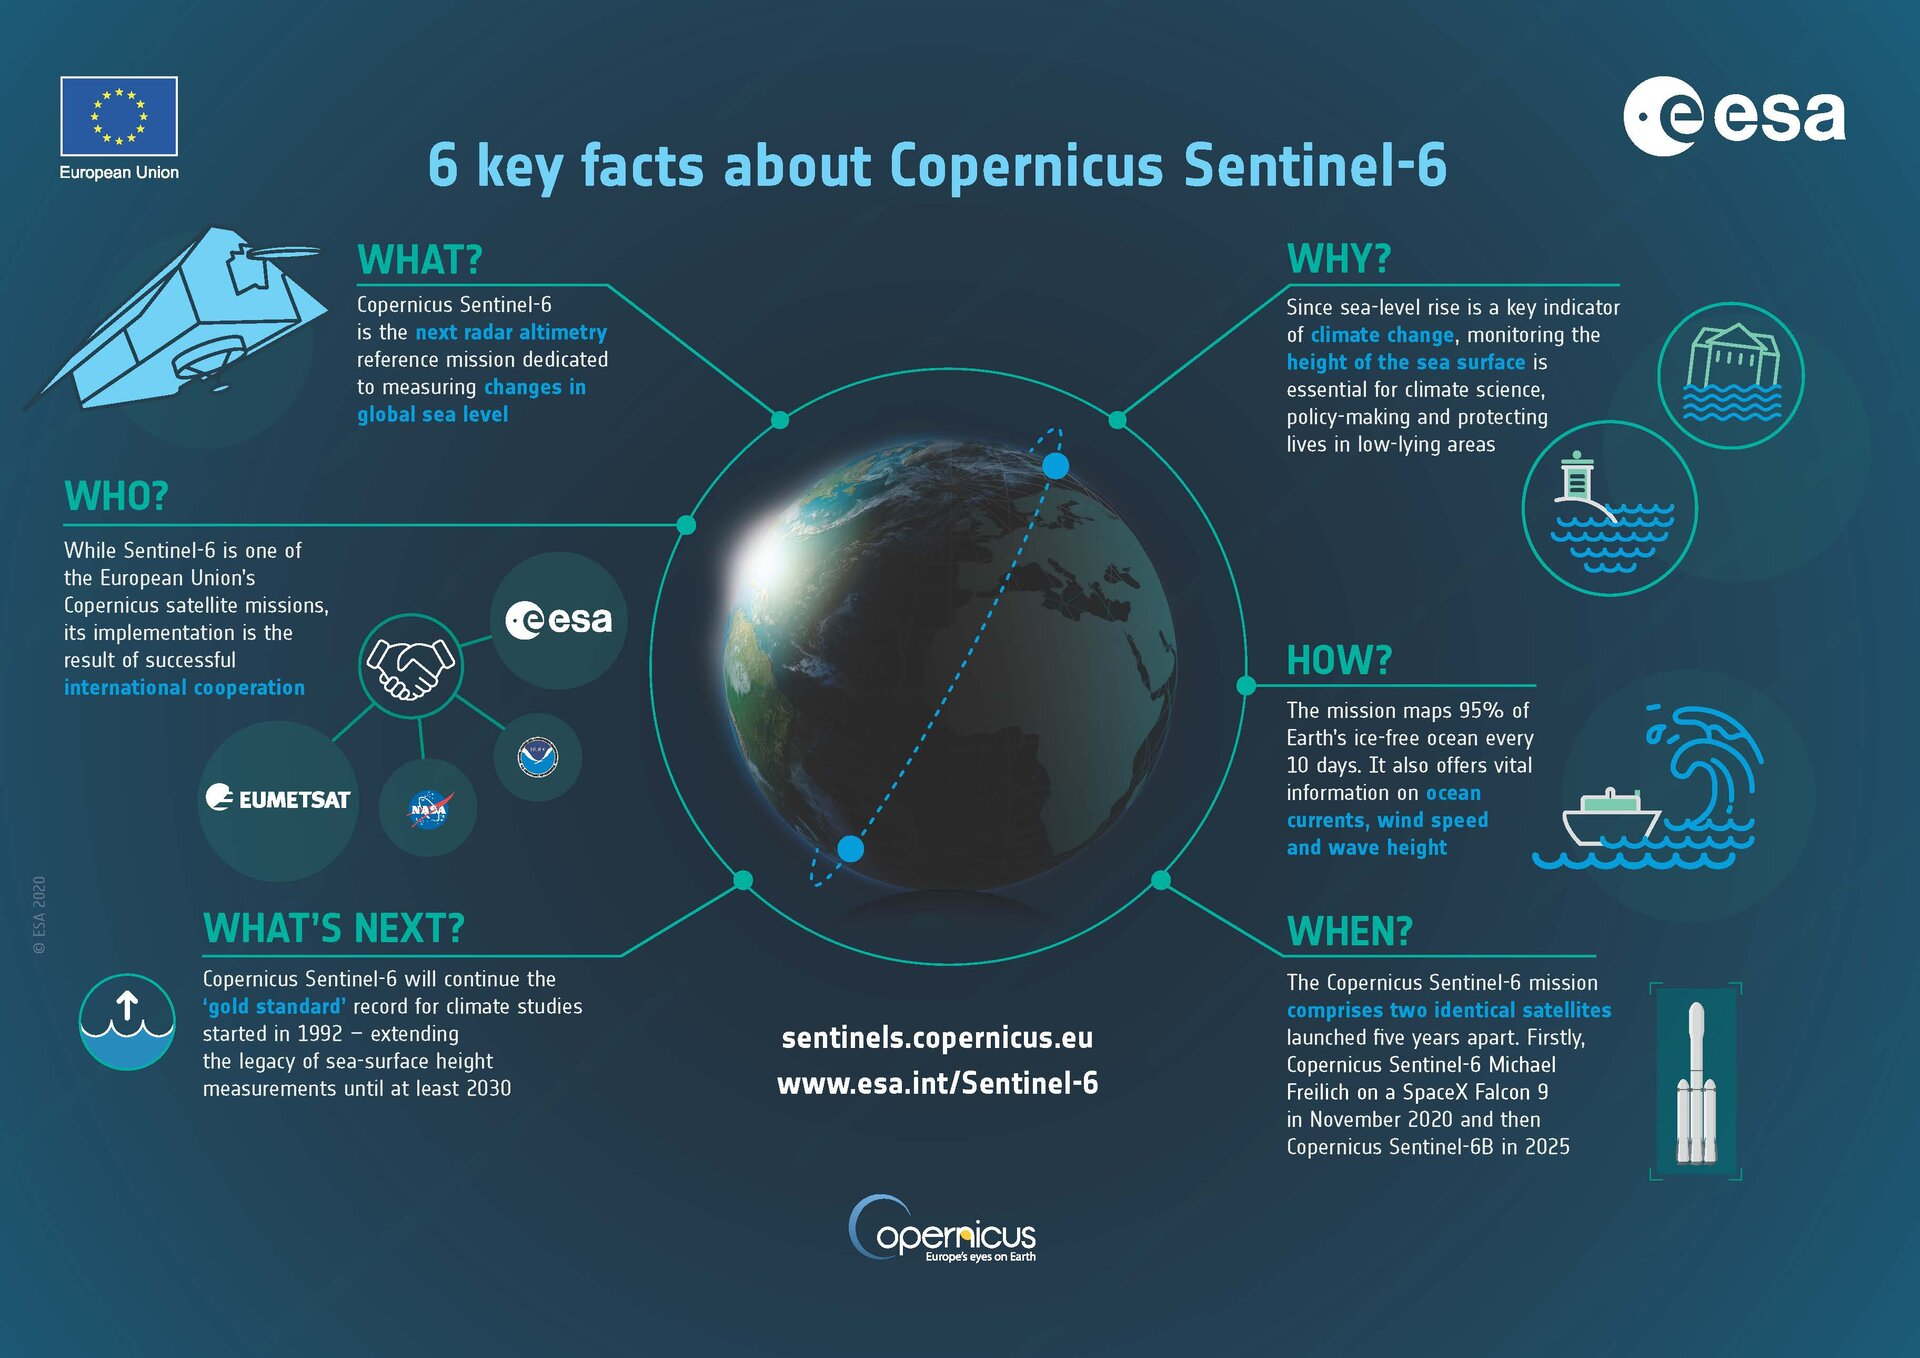 Six key facts about Copernicus Sentinel-6